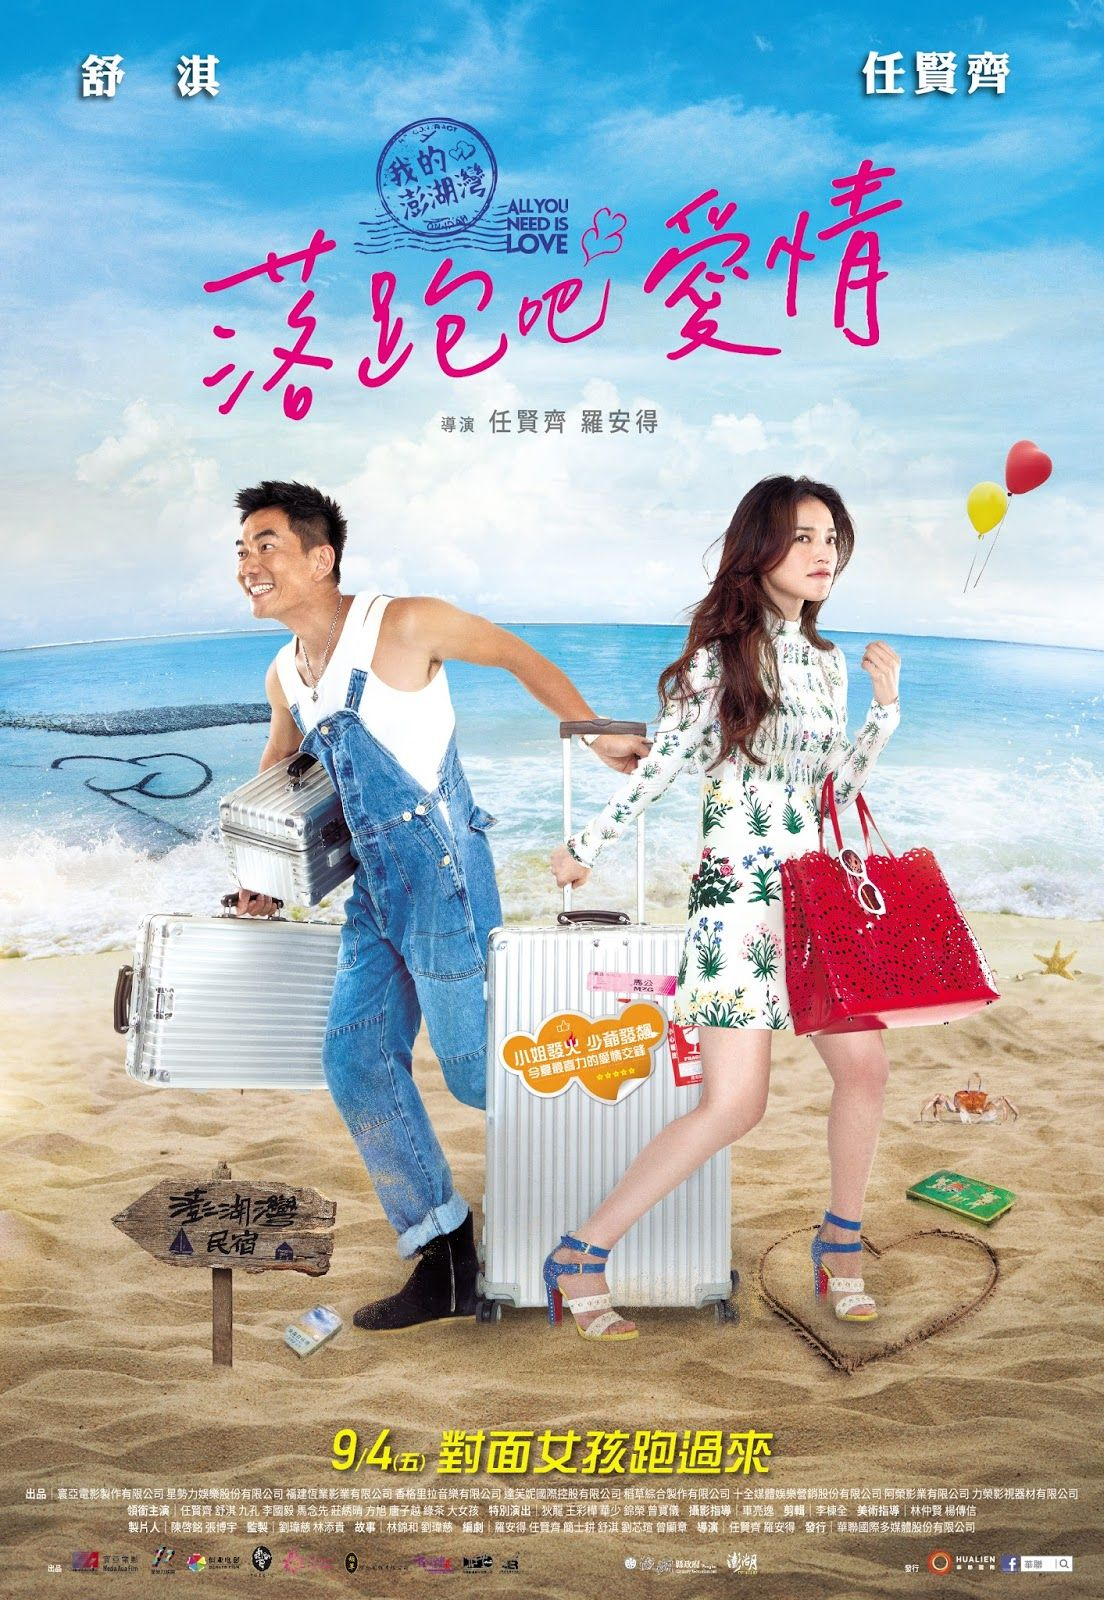 All You Need Is Love (2015) Subtitle Indonesia Filmes